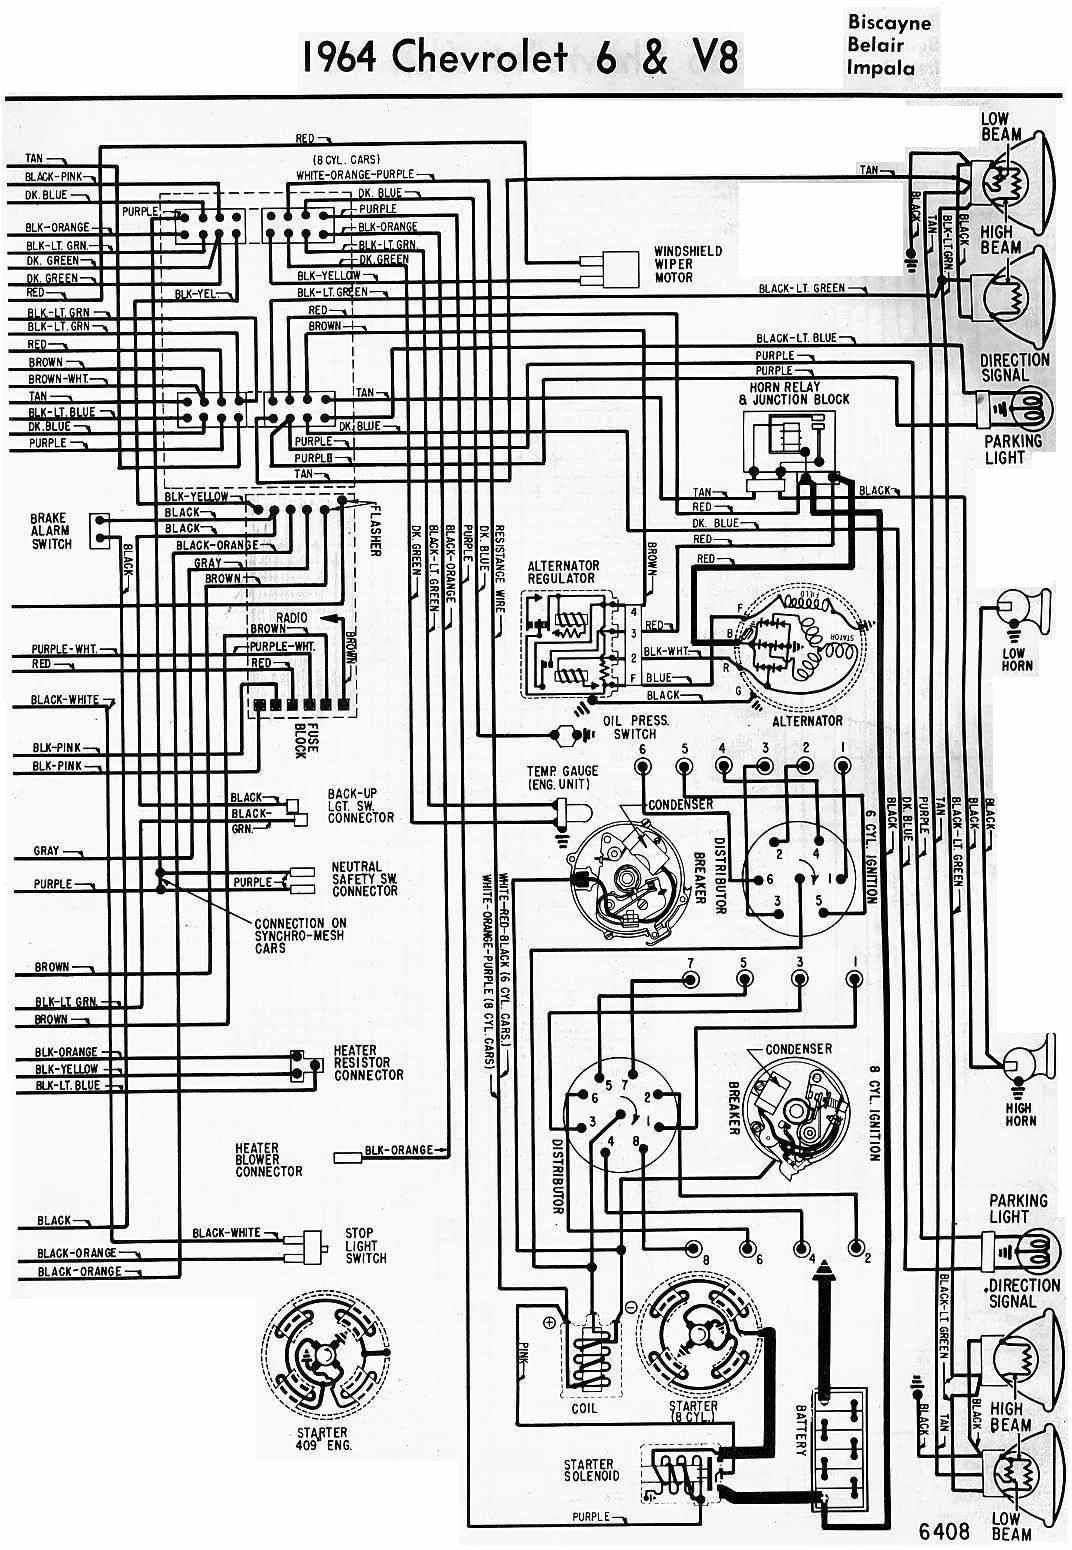 small resolution of gm fuse box diagram 1964 impala wiring diagram loadgm fuse box diagram 1964 impala data diagram